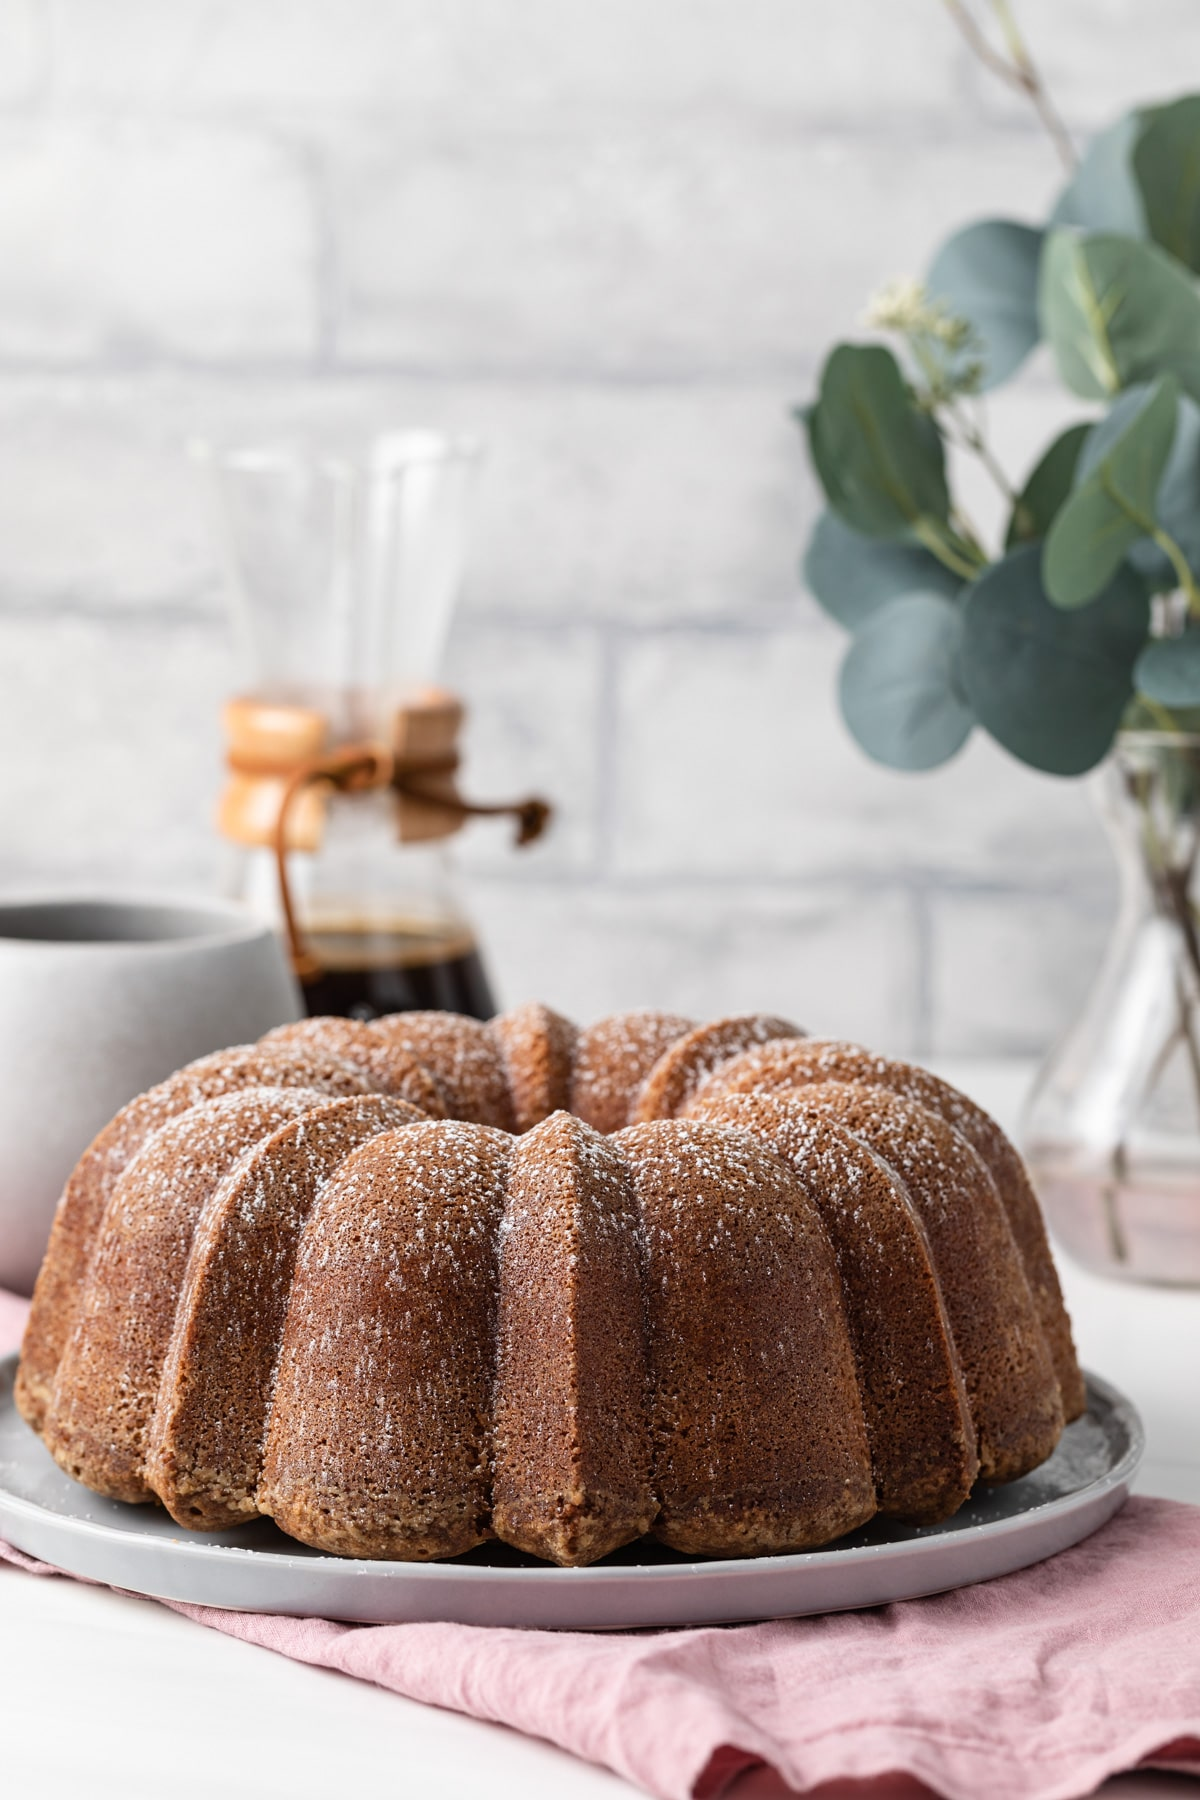 front view of whole pound cake on grey plate over a pink napkin with coffee and plant in background